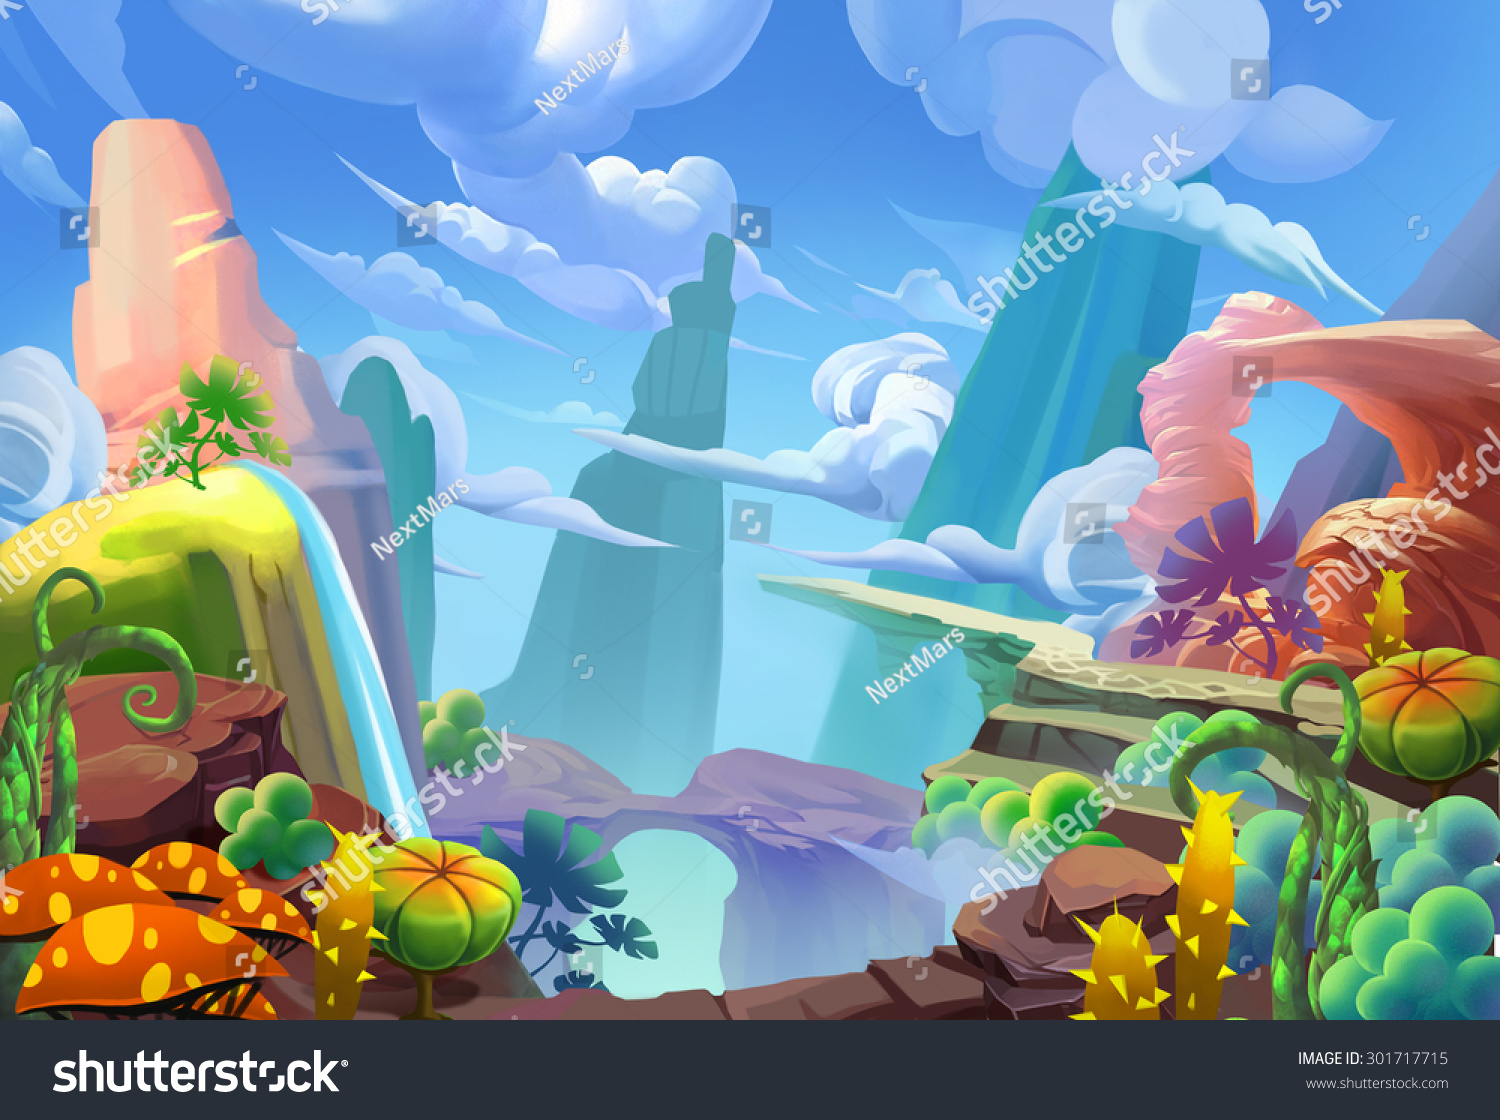 Download Wallpaper Mountain Cartoon - stock-photo-illustration-mountain-top-cartoon-style-fantastic-nature-topic-scene-wallpaper-background-301717715  Pic_776291.jpg